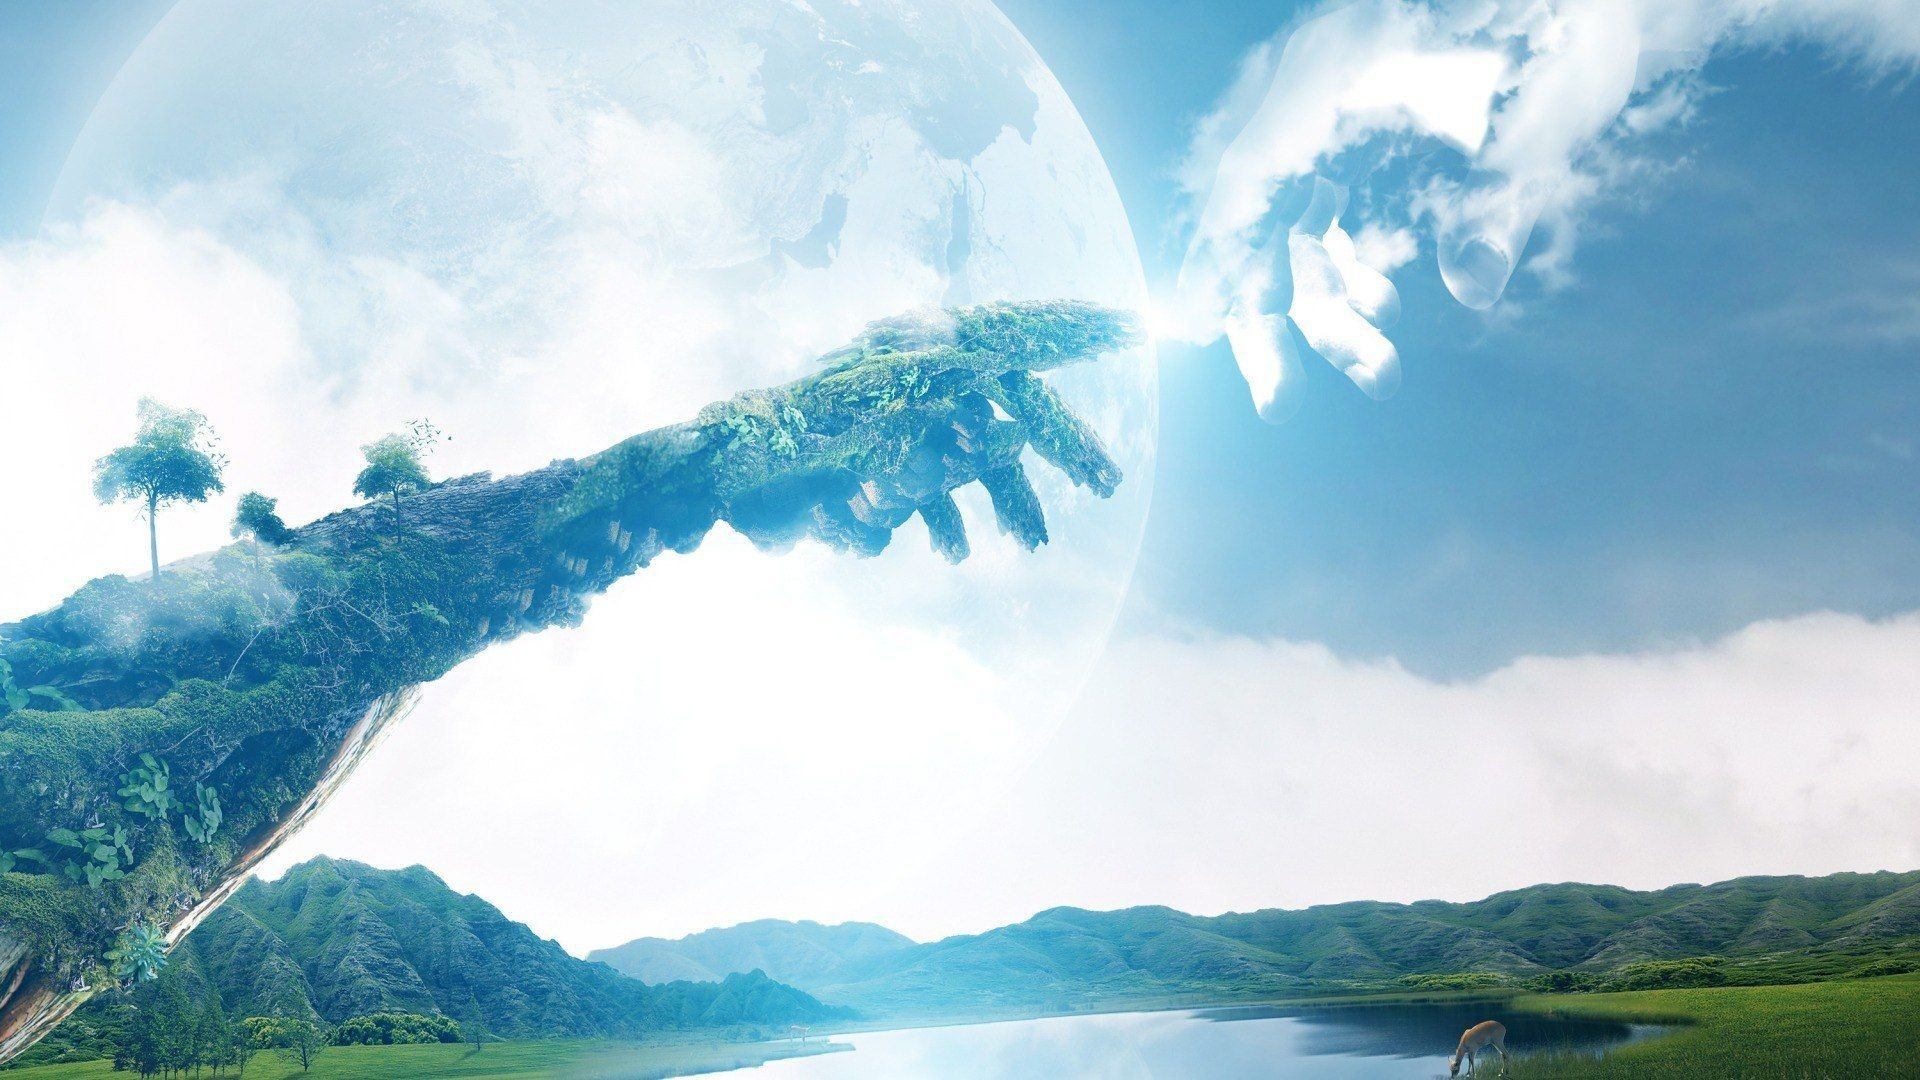 1920x1080 Touching earth to heaven wallpapers and images - wallpapers .